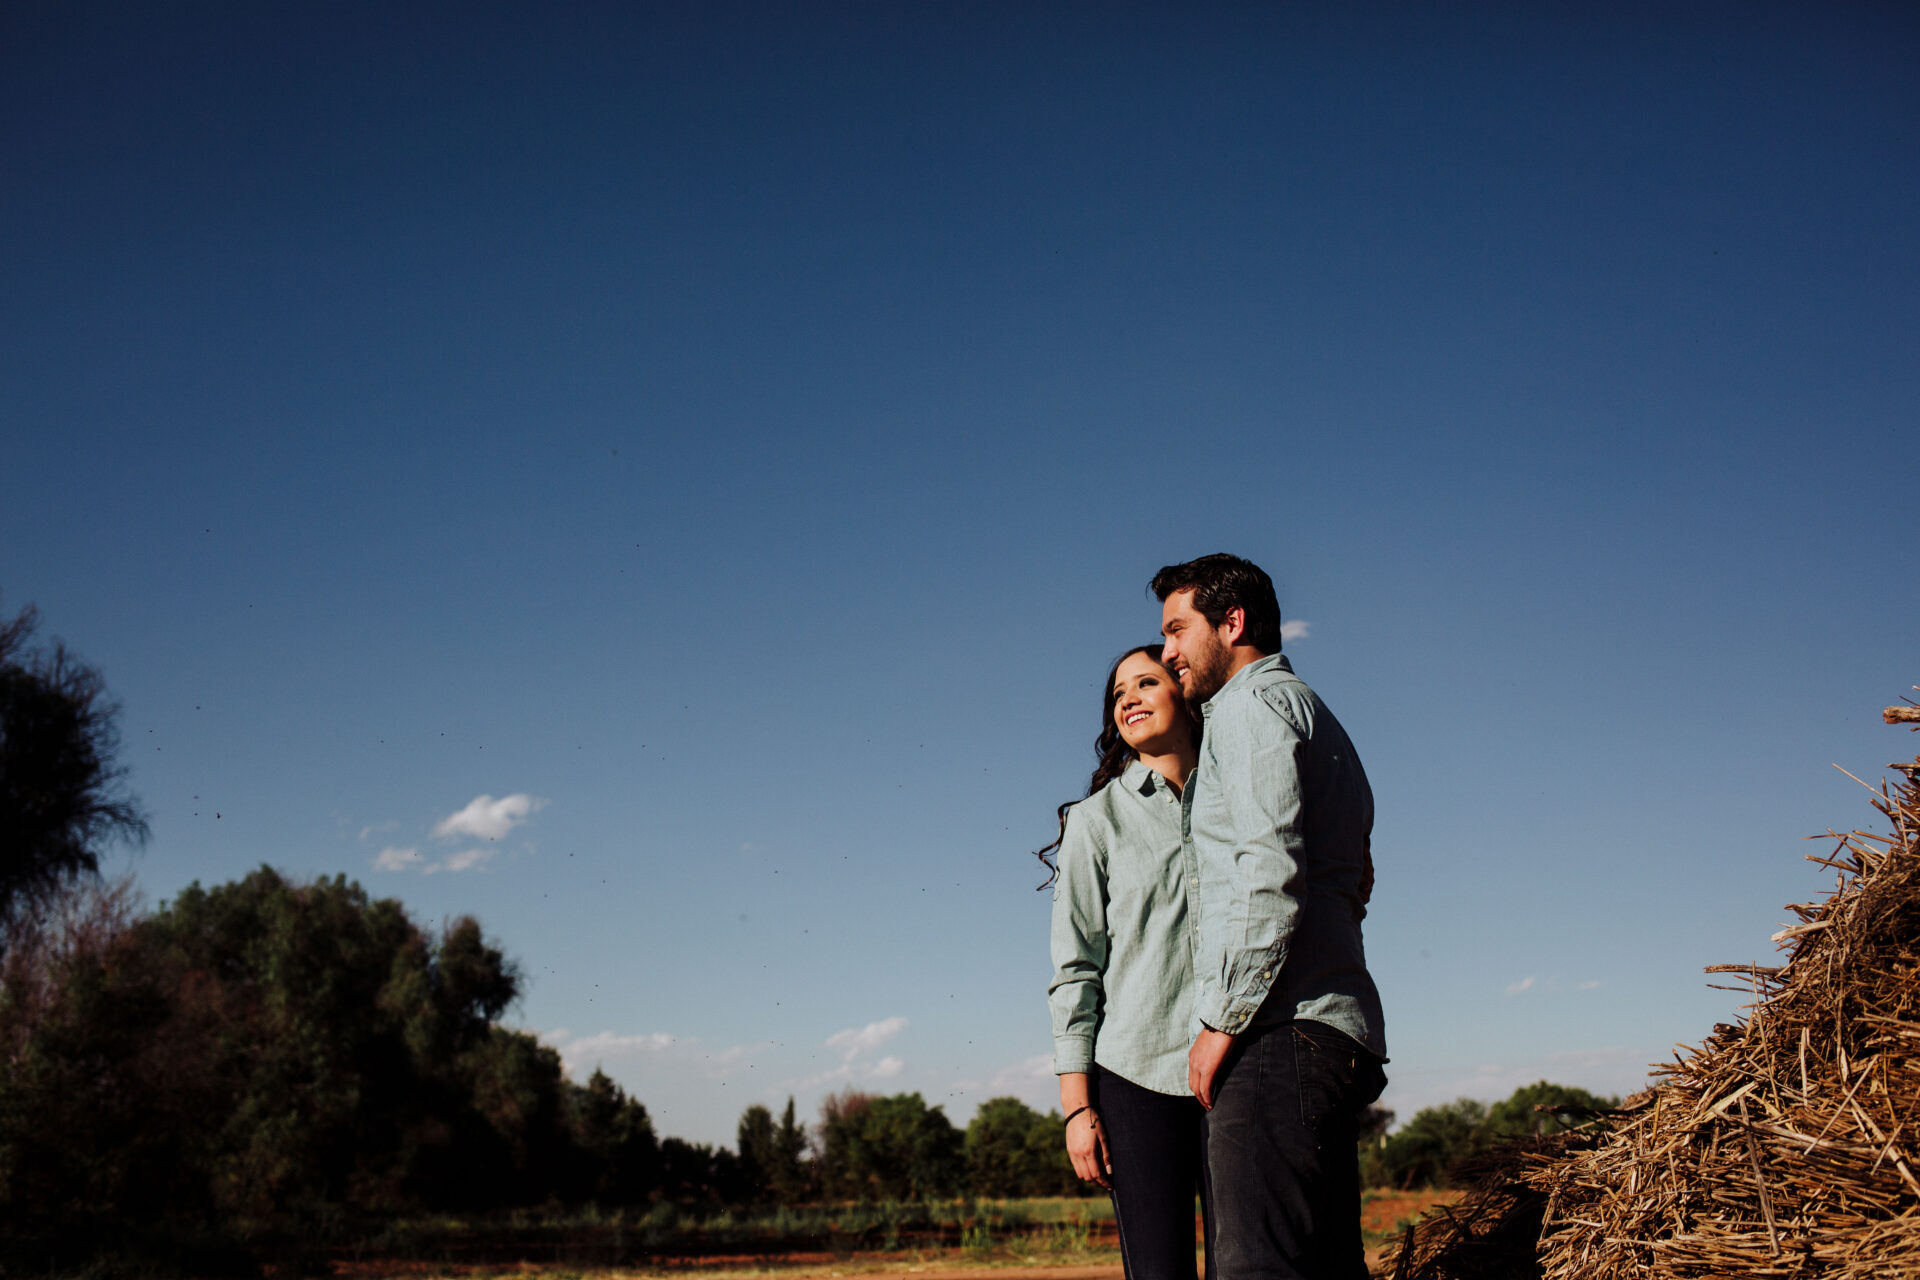 javier_noriega_fotografo_save_the_date_zacatecas_wedding_photographer7